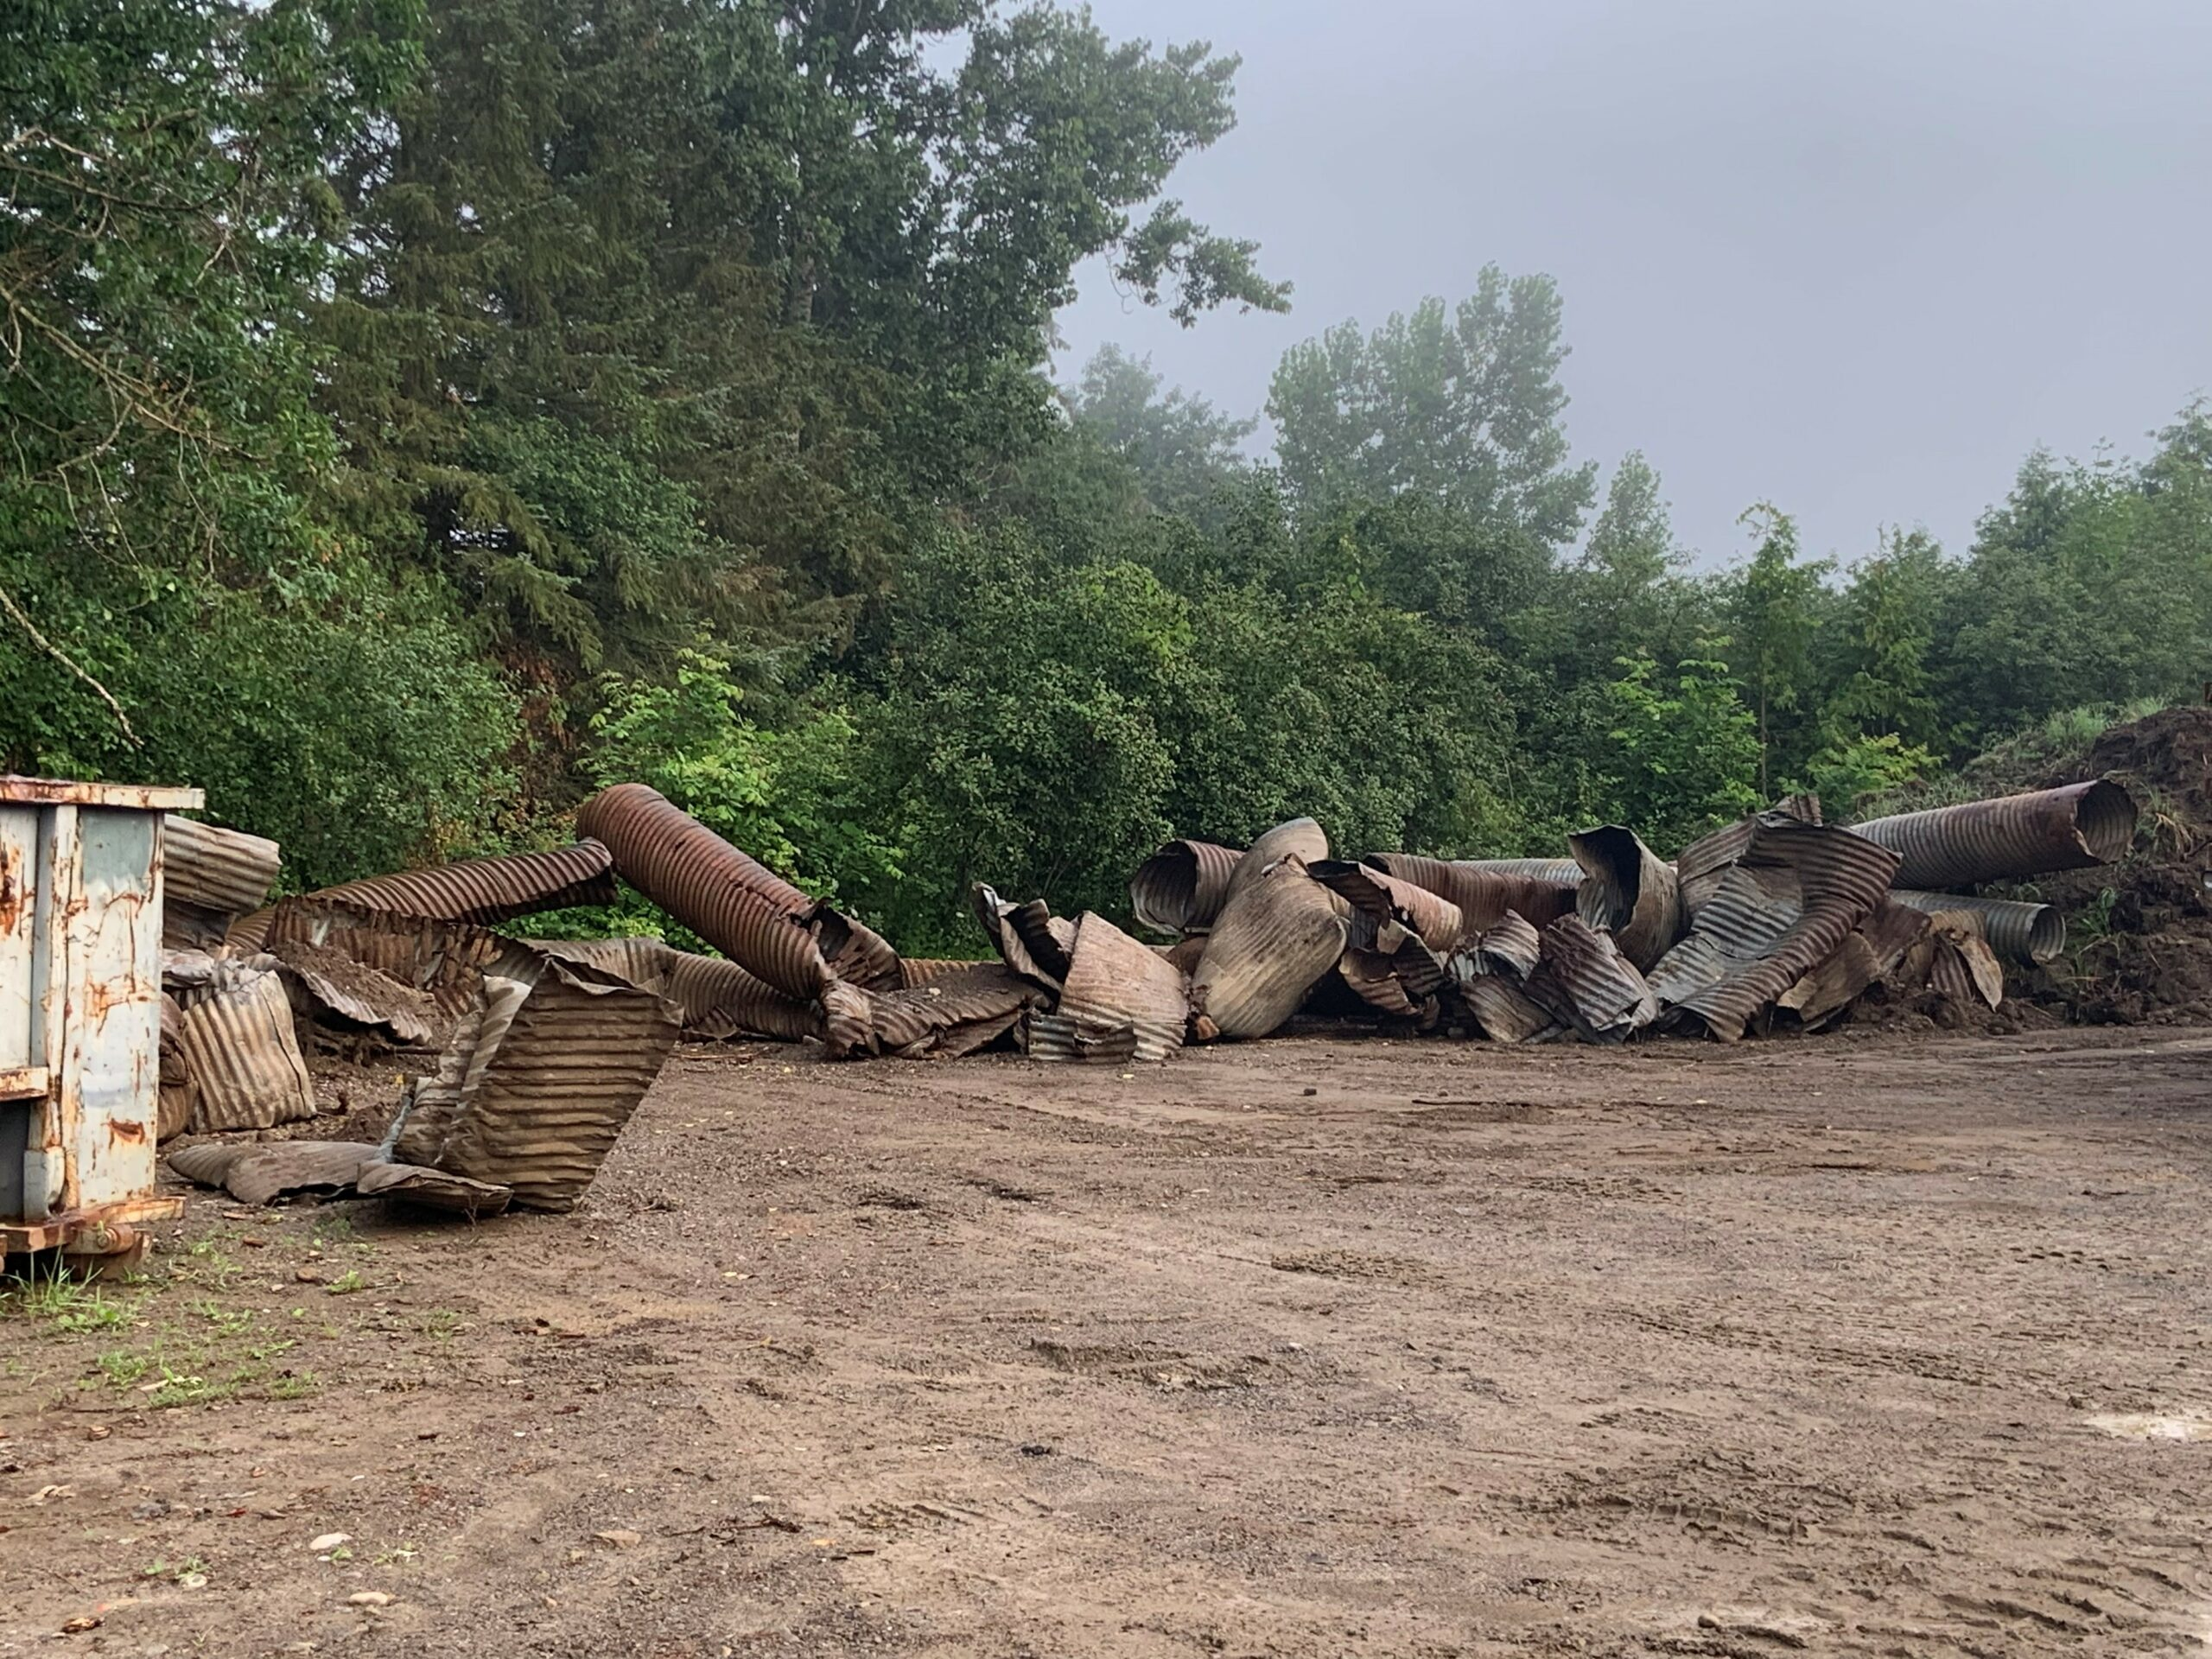 a big pile of old, dirty, rusted used culverts